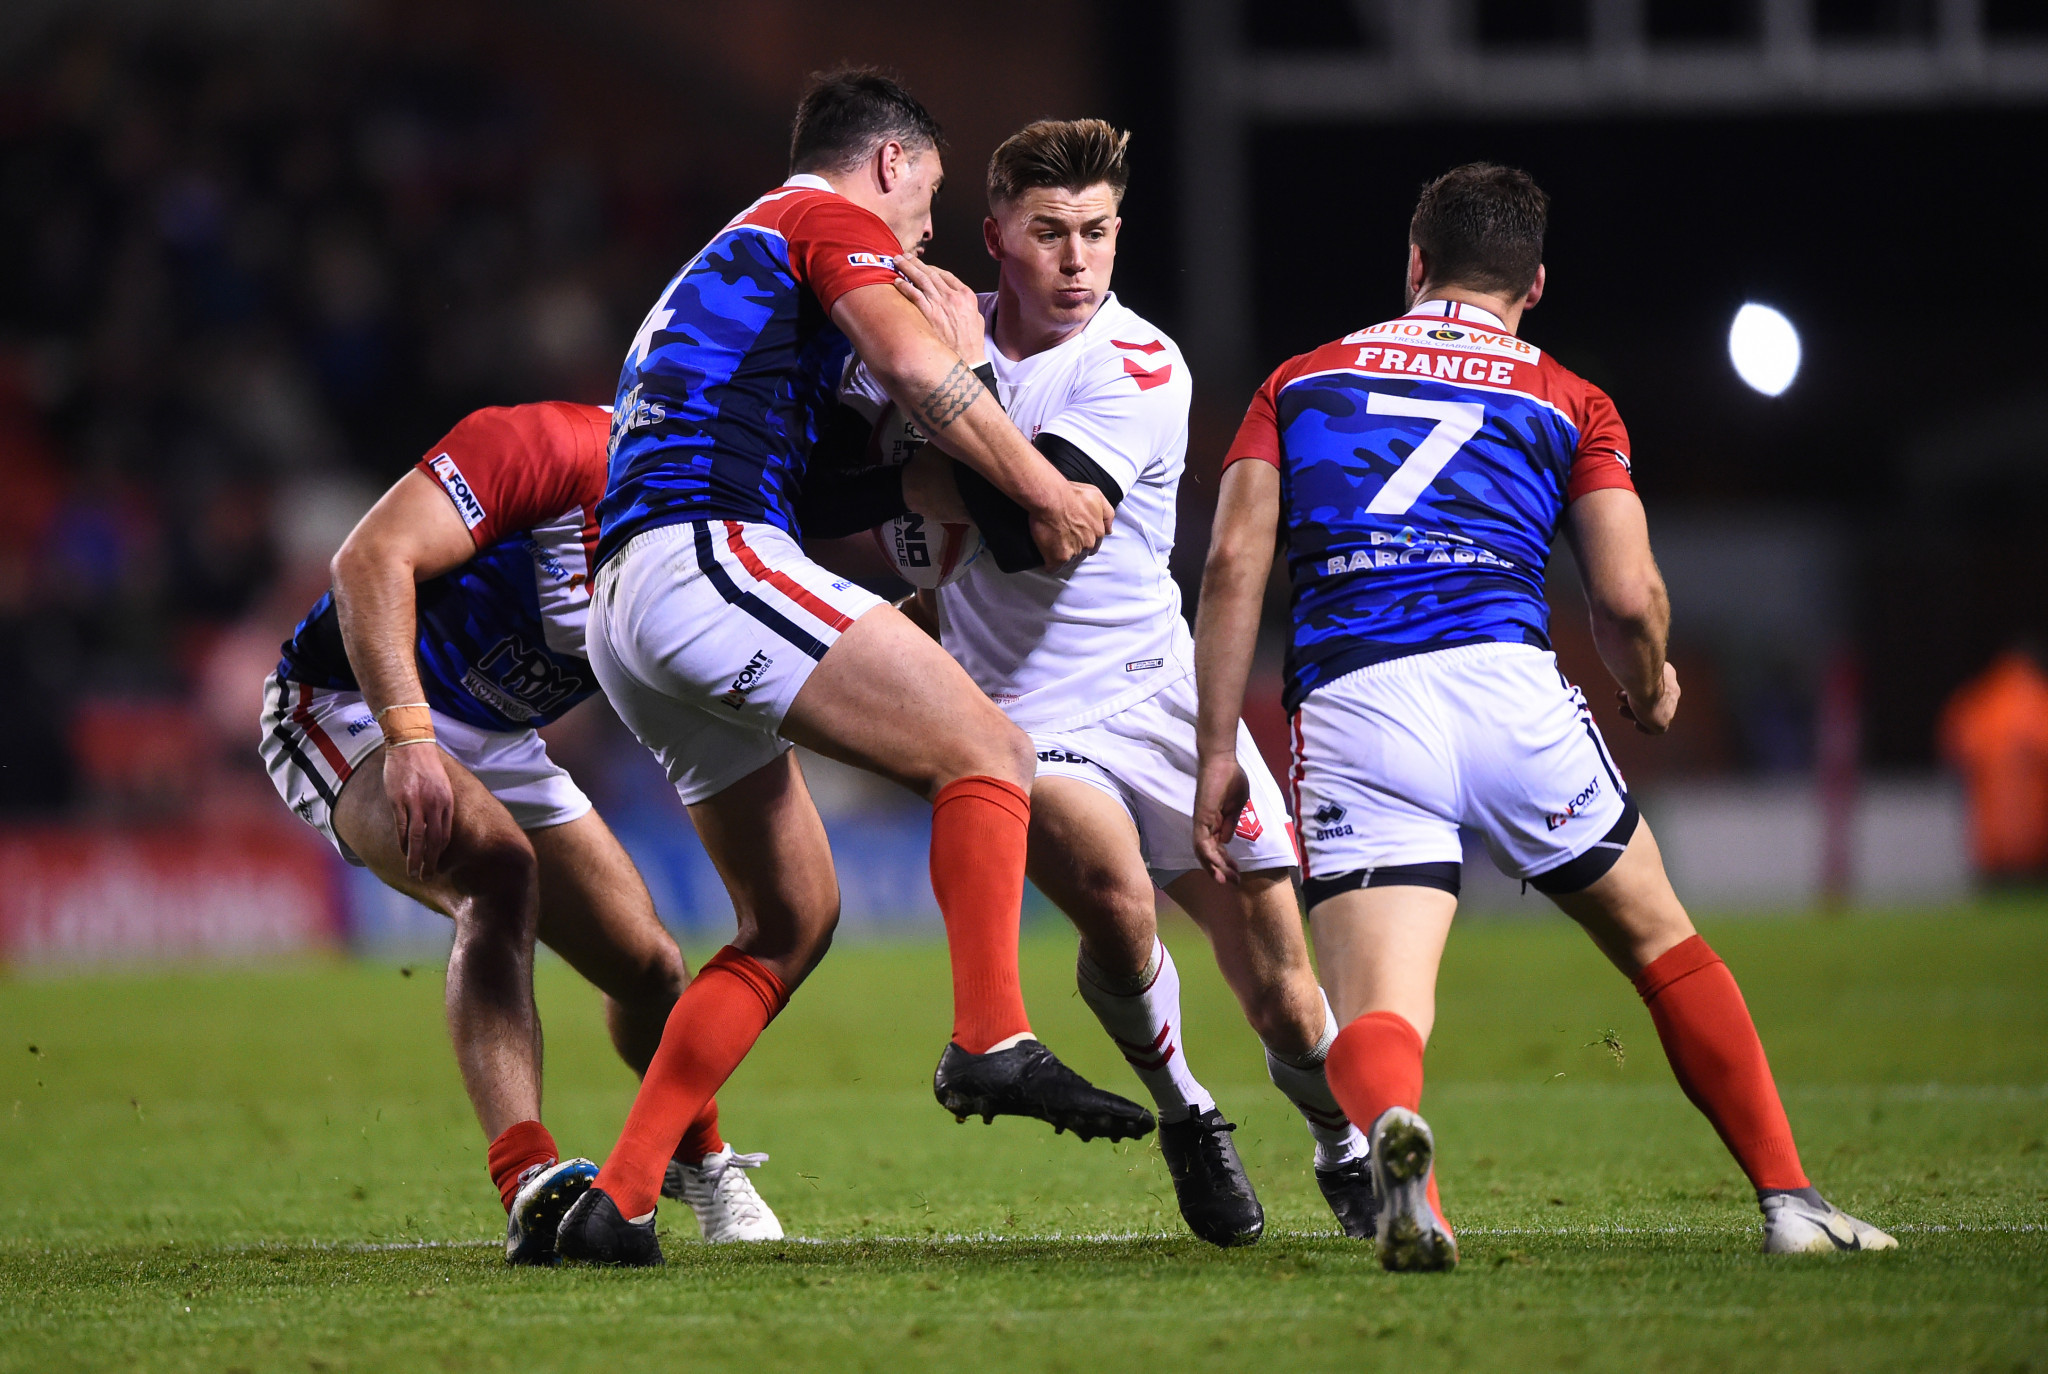 Scrums banned on COVID-19 grounds for France-England internationals arranged in lieu of Rugby League World Cup